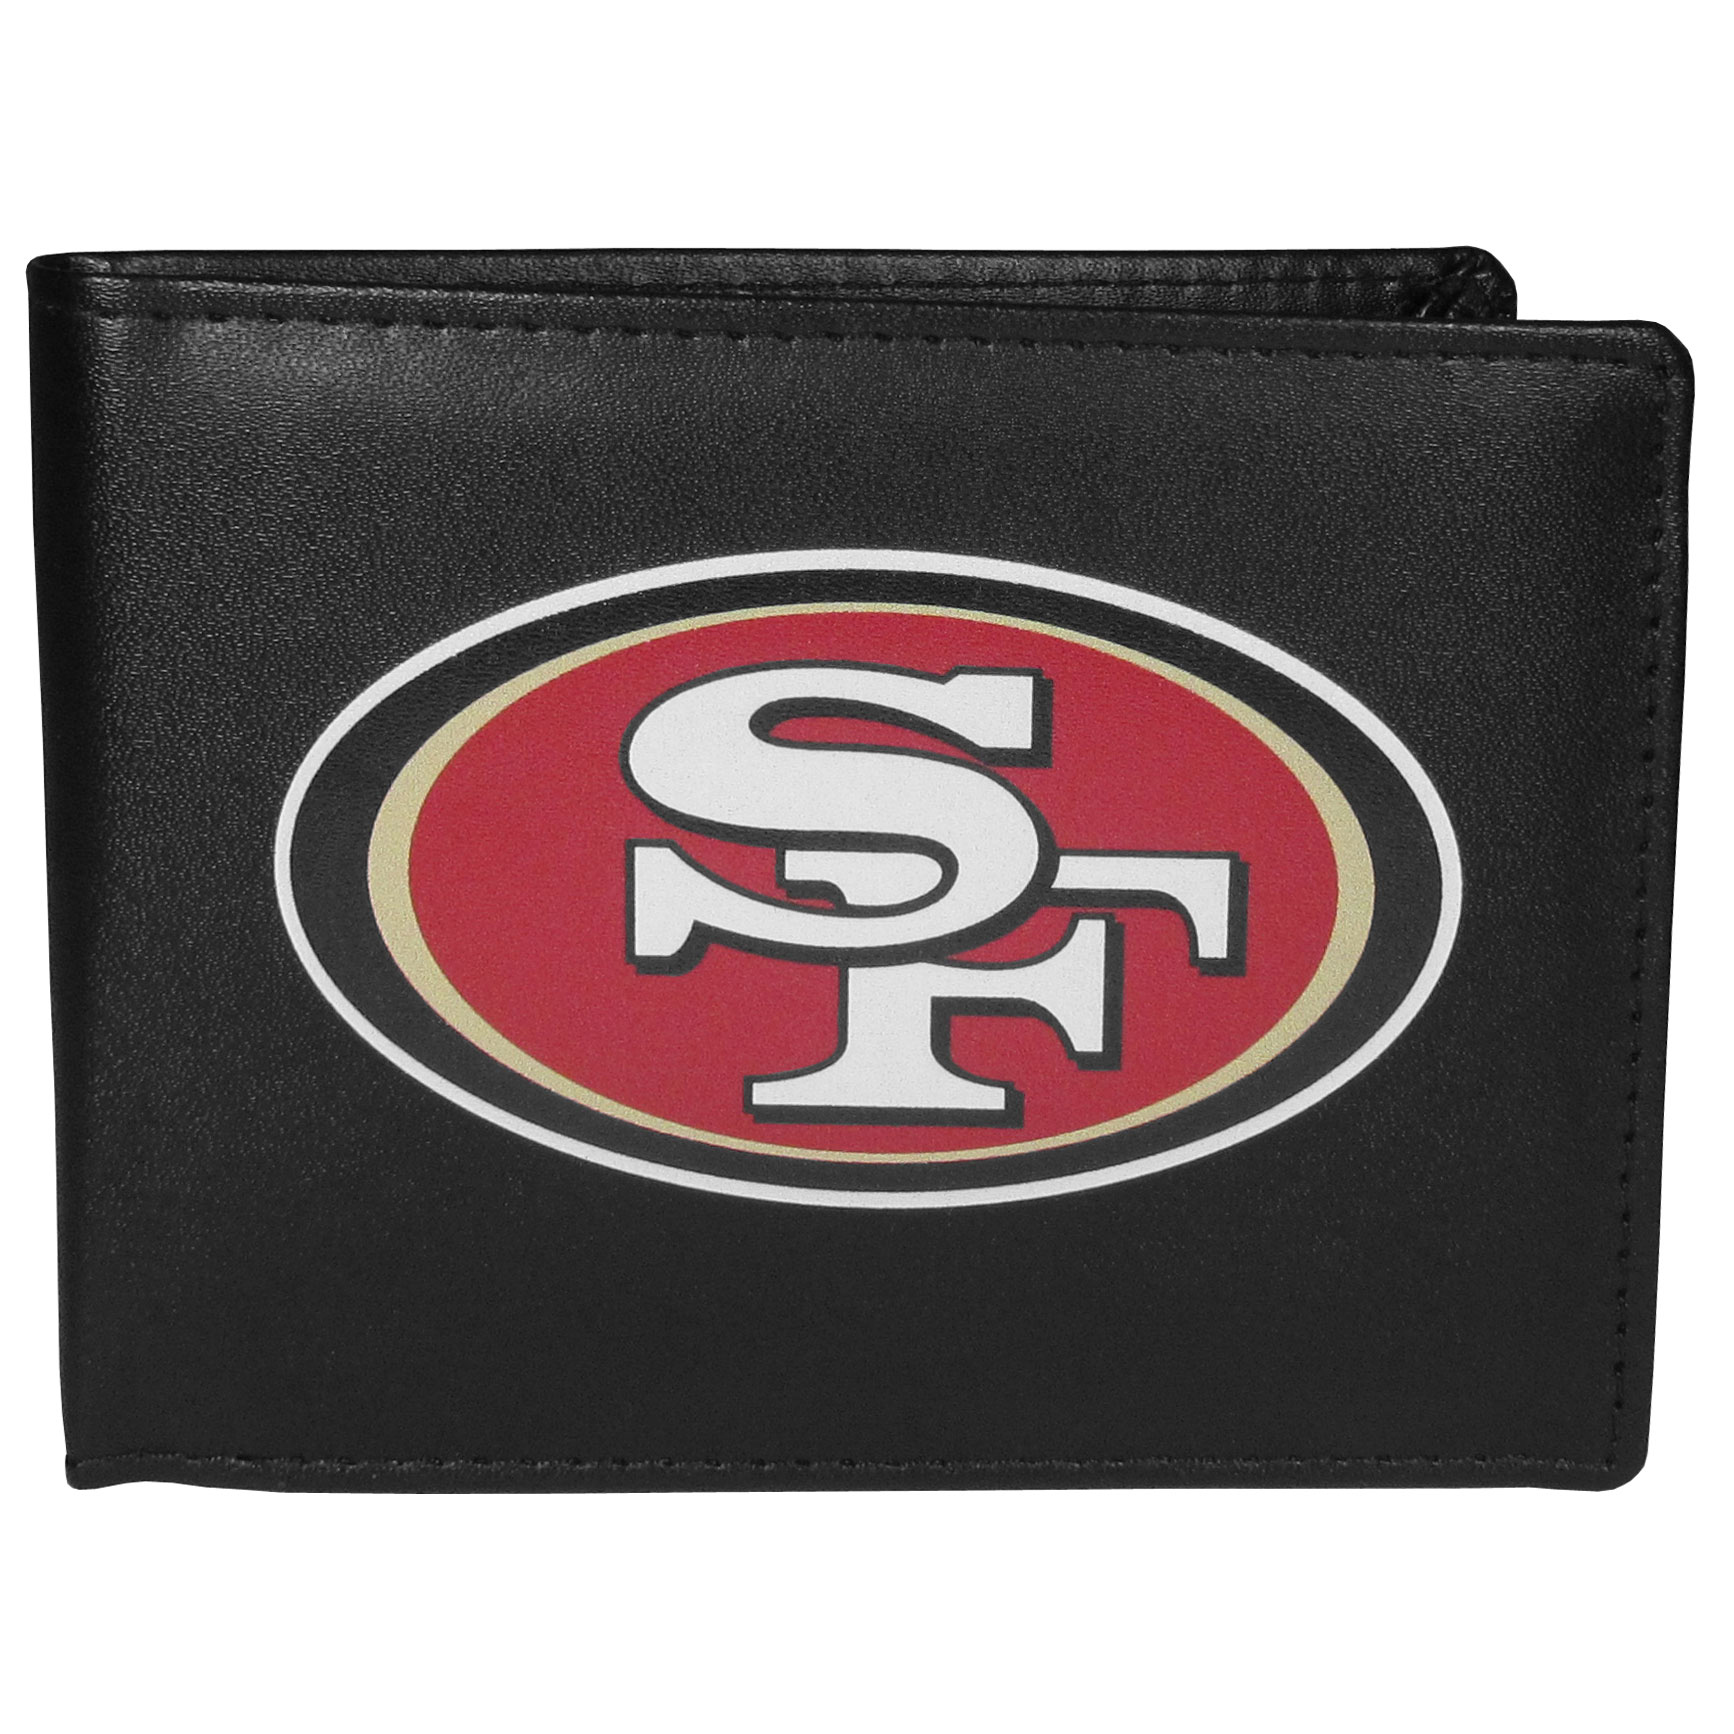 San Francisco 49ers Leather Bi-fold Wallet, Large Logo - Our classic fine leather bi-fold wallet is meticulously crafted with genuine leather that will age beautifully so you will have a quality wallet for years to come. The wallet opens to a large, billfold pocket and numerous credit card slots and has a convenient windowed ID slot. The front of the wallet features an extra large San Francisco 49ers printed logo.